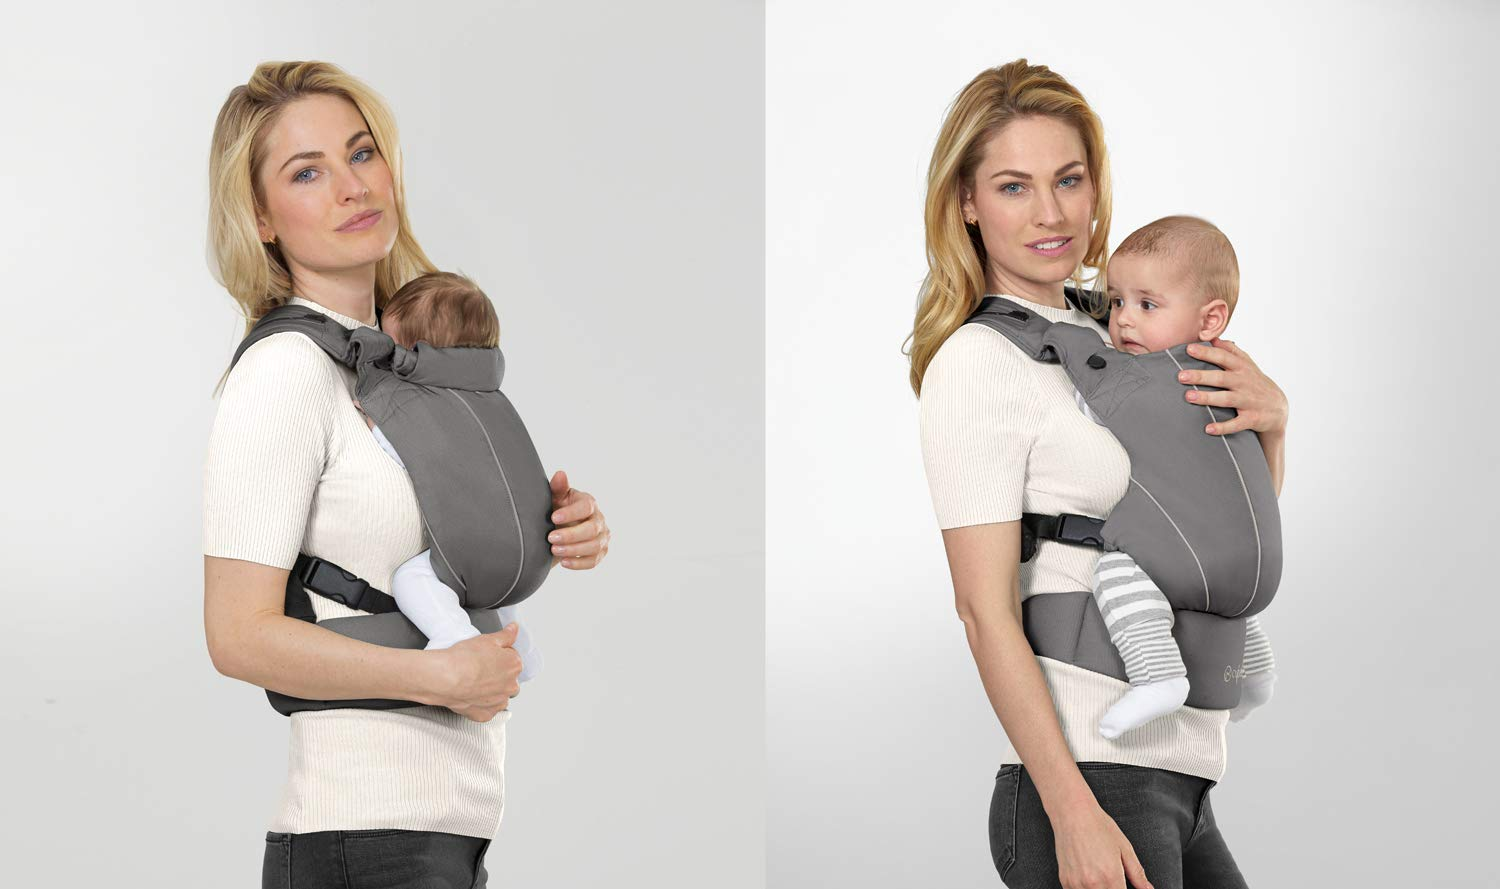 "CYBEX Gold MAIRA.click Ergonomic Baby Carrier, From birth to approx. 2 years (approx. 3.5 - 15 kg), 100% Cotton, Manhattan Grey  Comfortable and versatile adjustable baby carrier: For ergonomic carrying and healthy hip development in babies - Suitable from birth to approx. 2 years (approx. 3.5 - 15 kg), Recommended by the ""International Hip Dysplasia Institute"" Quick and easy putting on/taking off due to practical buckle system, Individually and continuously adjustable, Optimum wearing safety due to safety buckle on the waist belt Width and height-adjustable belt for individual adaptability, Multi-functional head and neck support, Promotes healthy development of the joints through natural squat position 4"